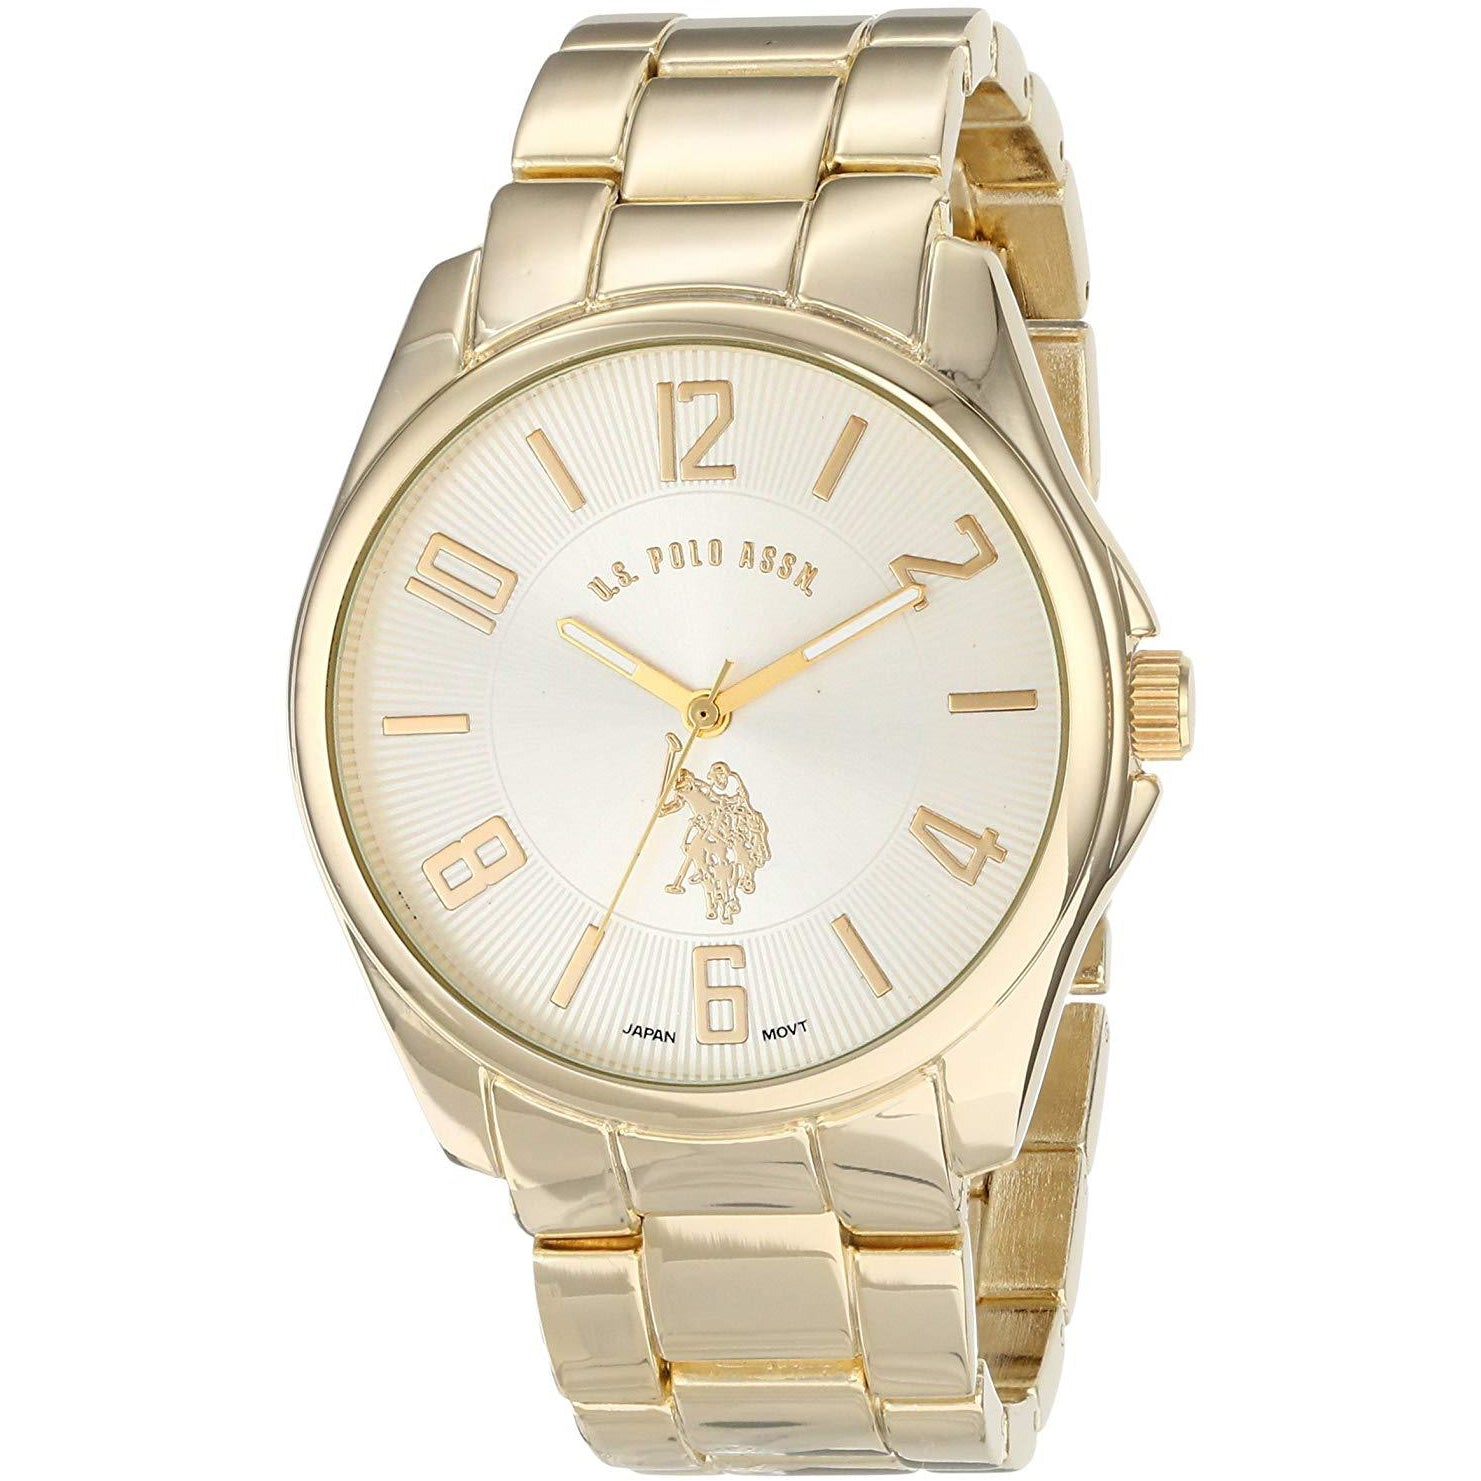 U.S. Polo Assn. Classic Men's USC80215 Gold-Tone Watch